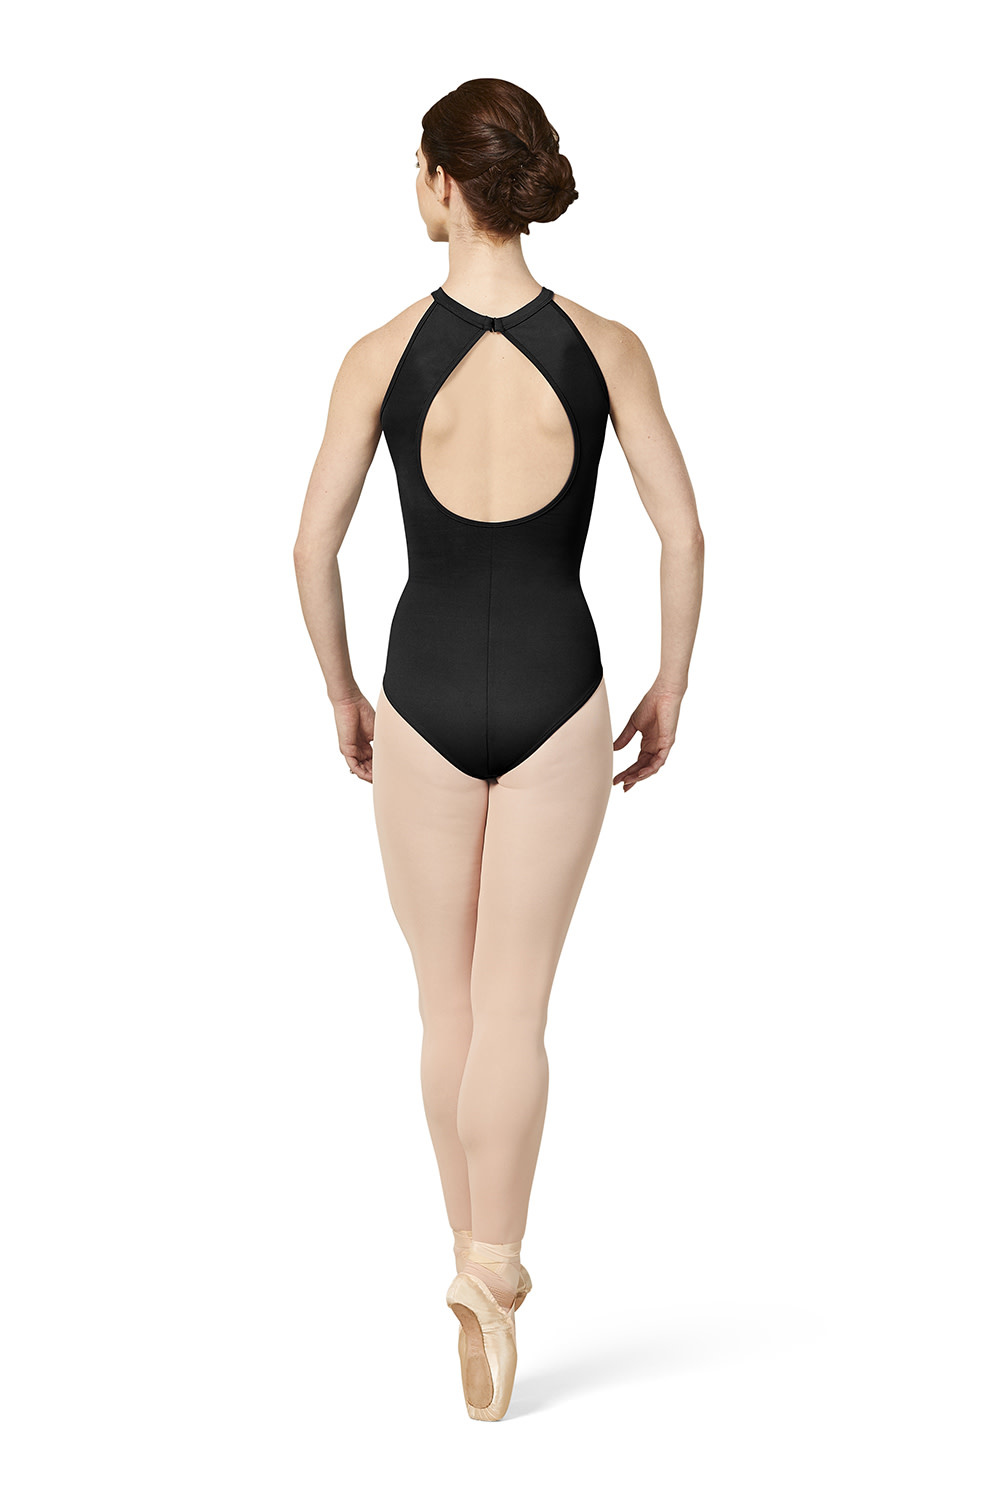 Mirella M8026LM Bodysuit for Adults